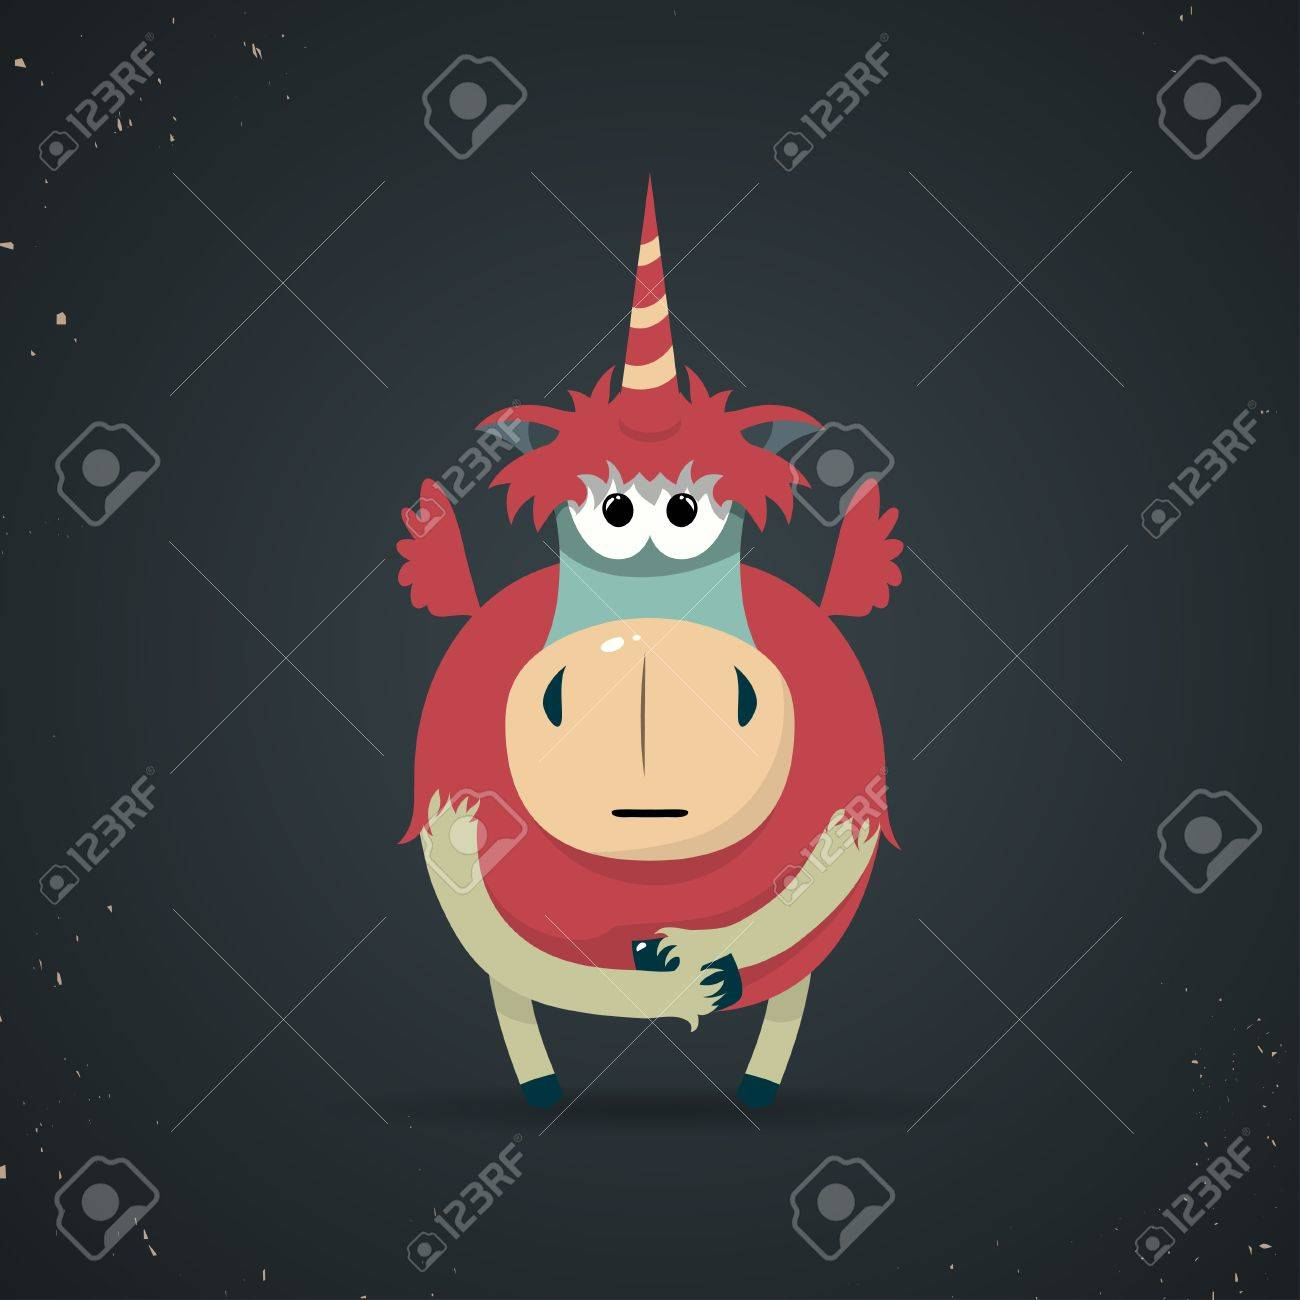 Cartoon illustration of a cute little mythical unicorn with a spiral horn and red body symbolic of virginity Stock Vector - 25357205